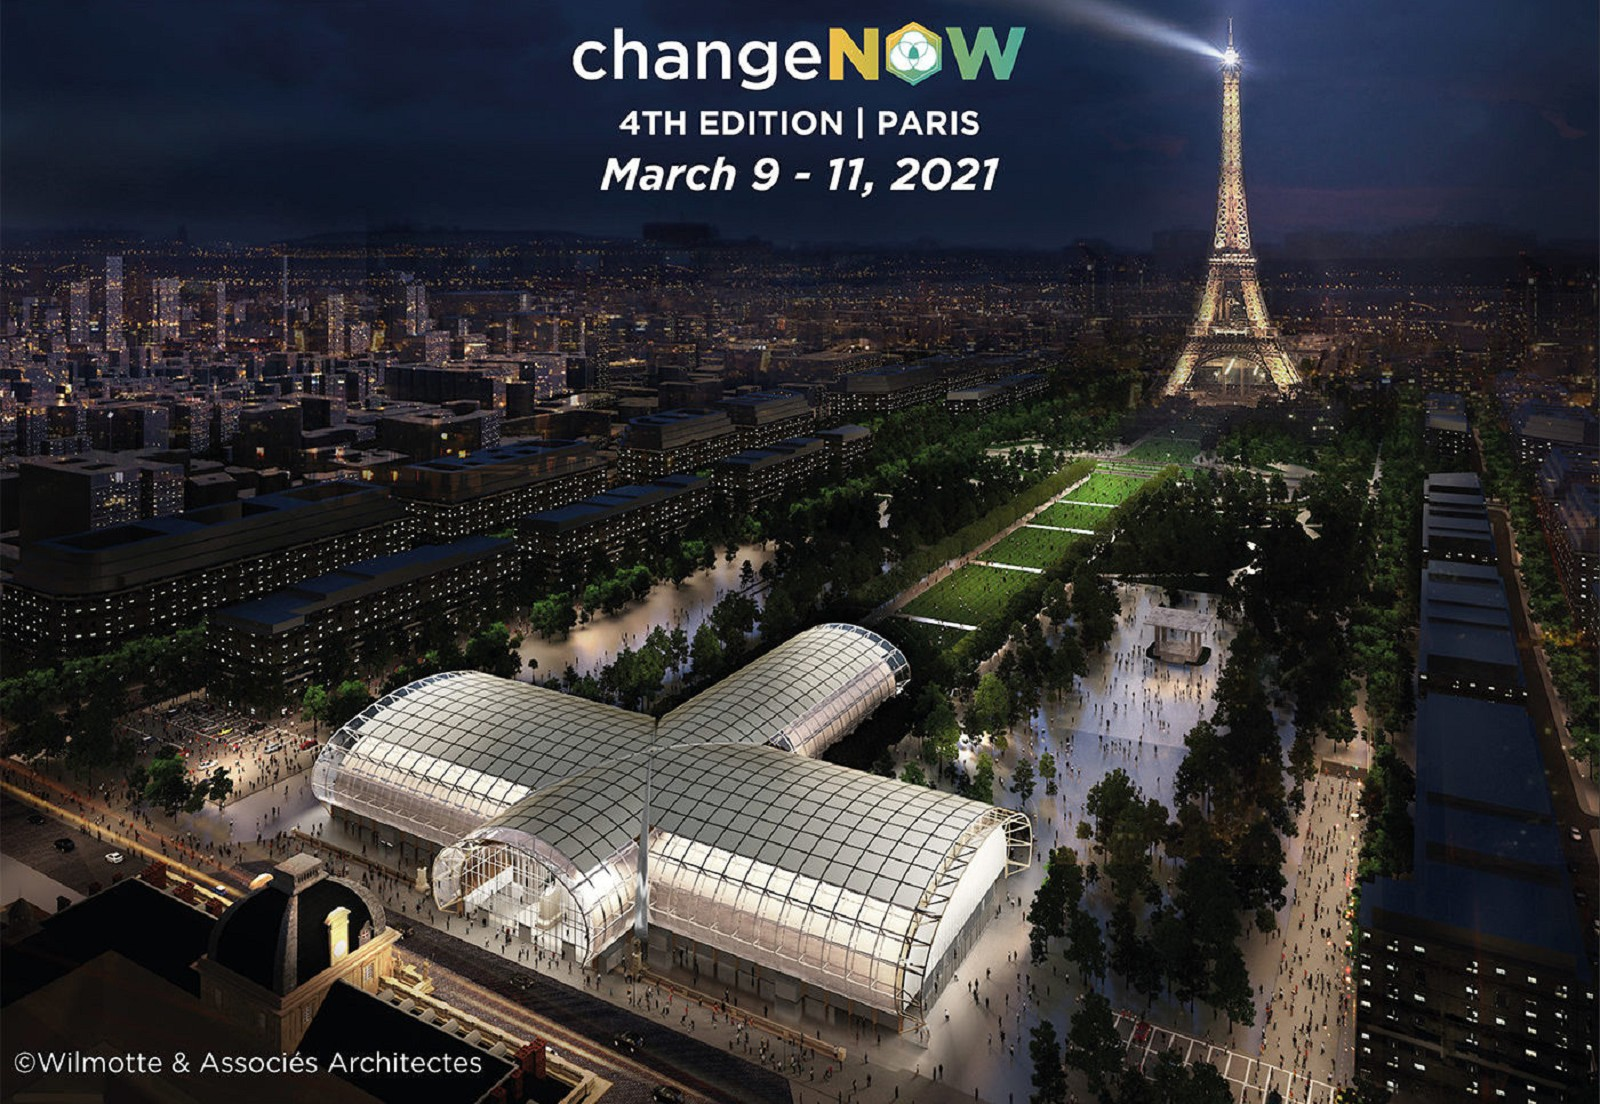 ChangeNow 2020 - Exposition universelle au Grand Palais